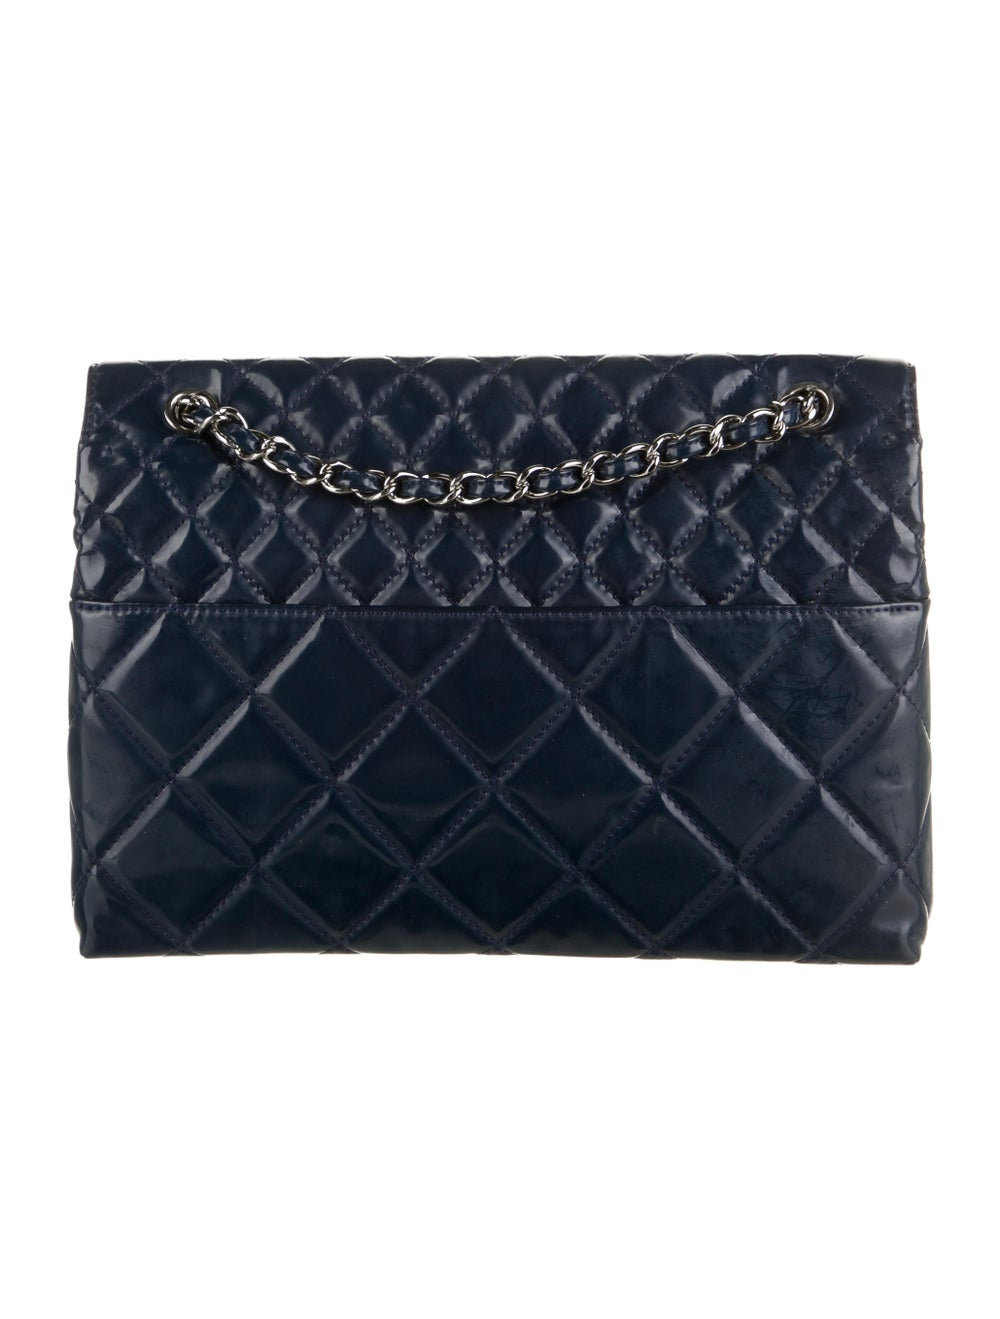 Chanel In The Business Patent Flap Bag Blue - image 4